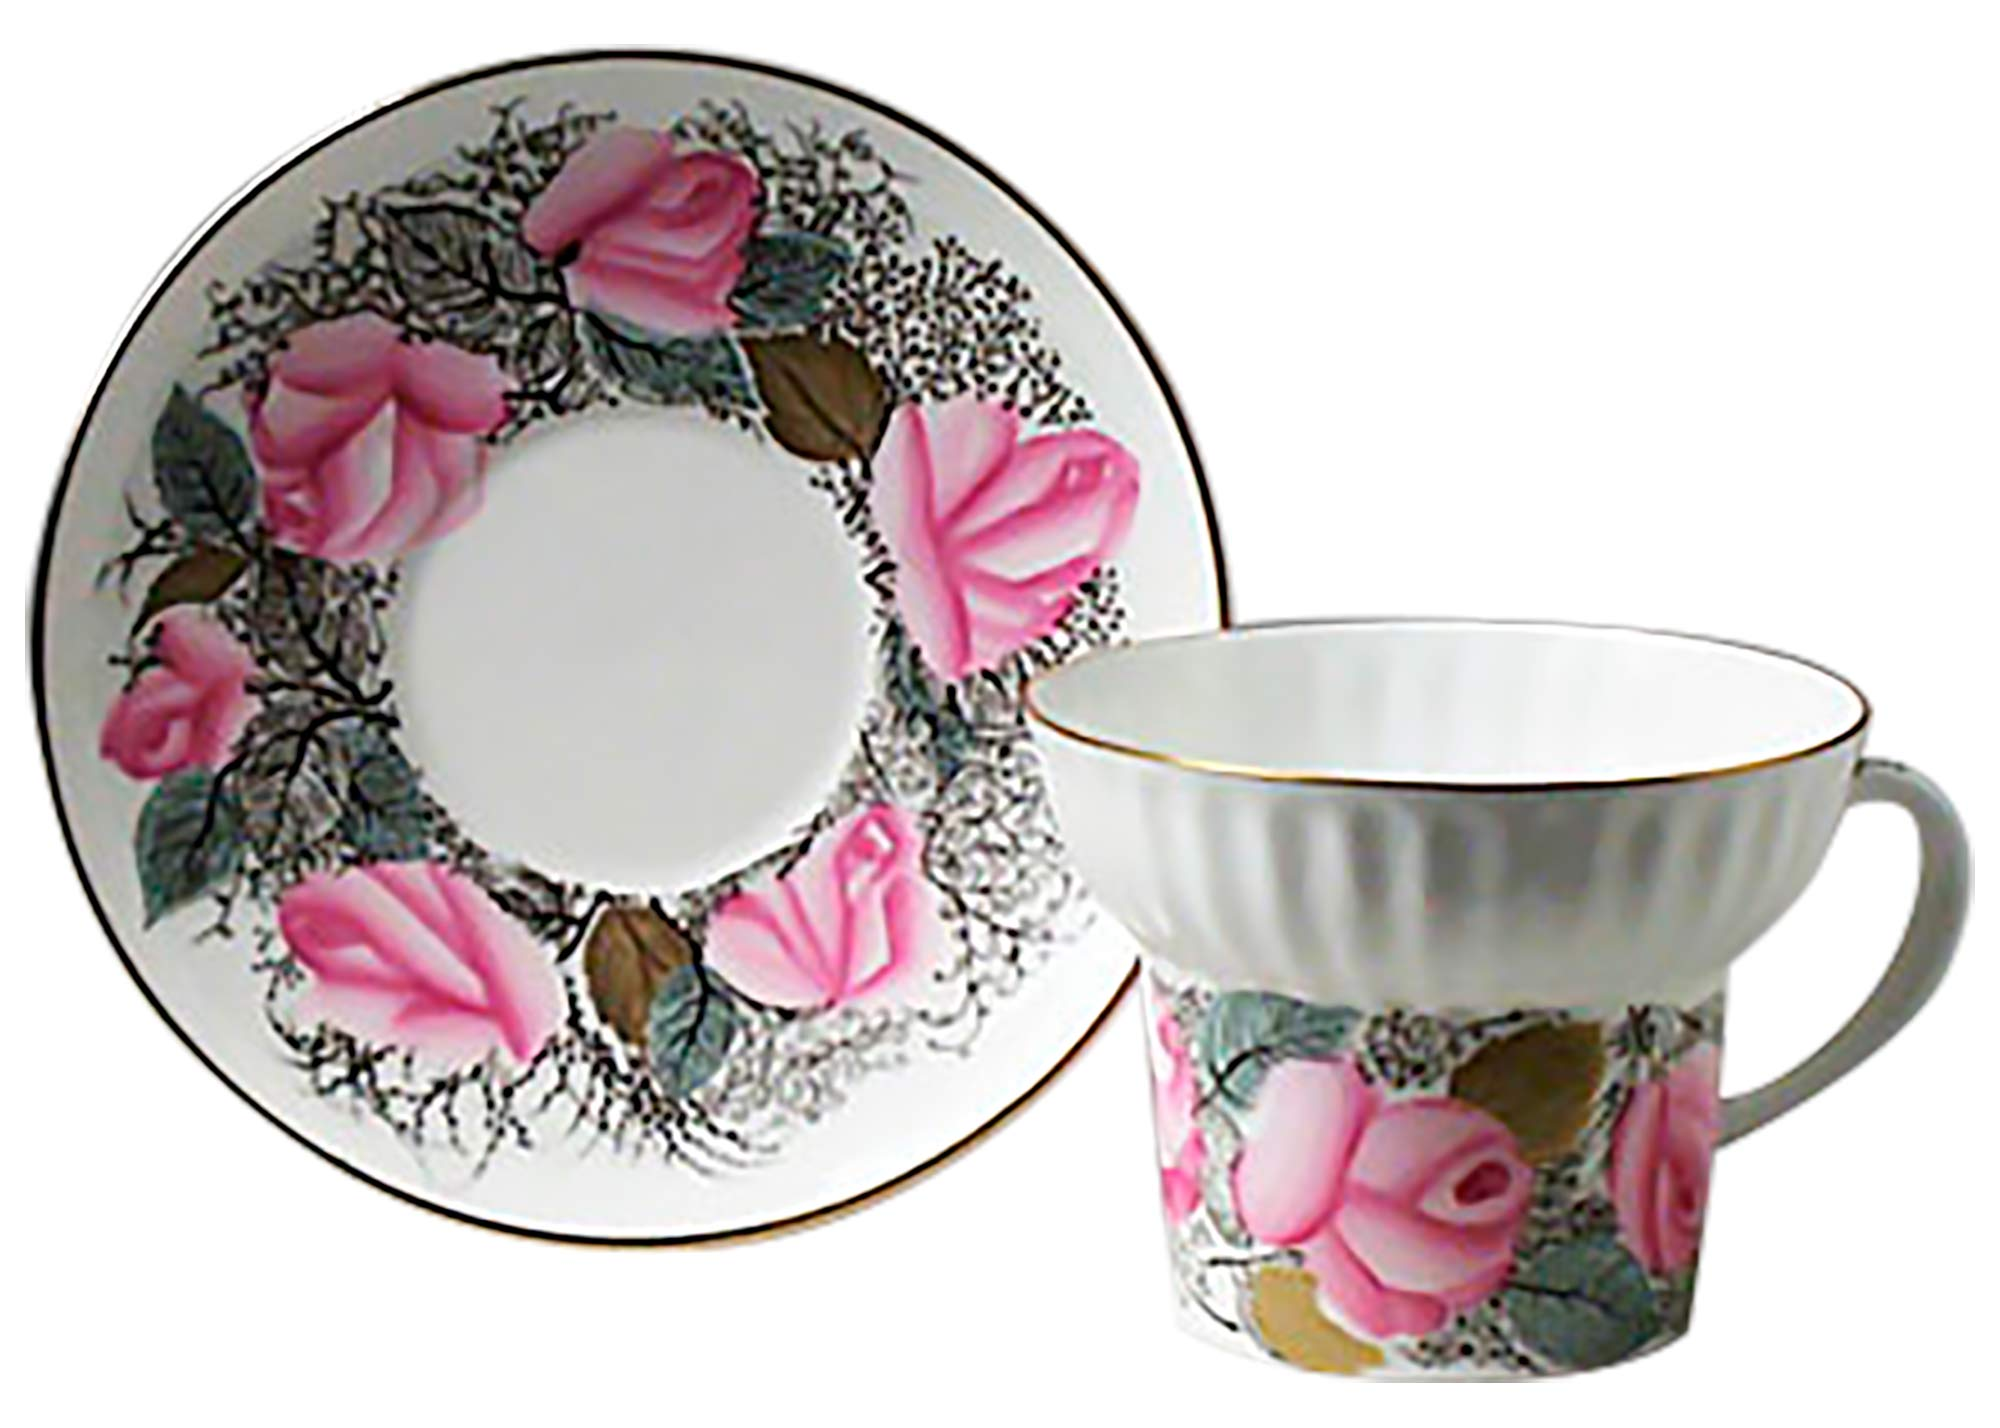 Buy Good Morning Tea Cup and Saucer at GoldenCockerel.com